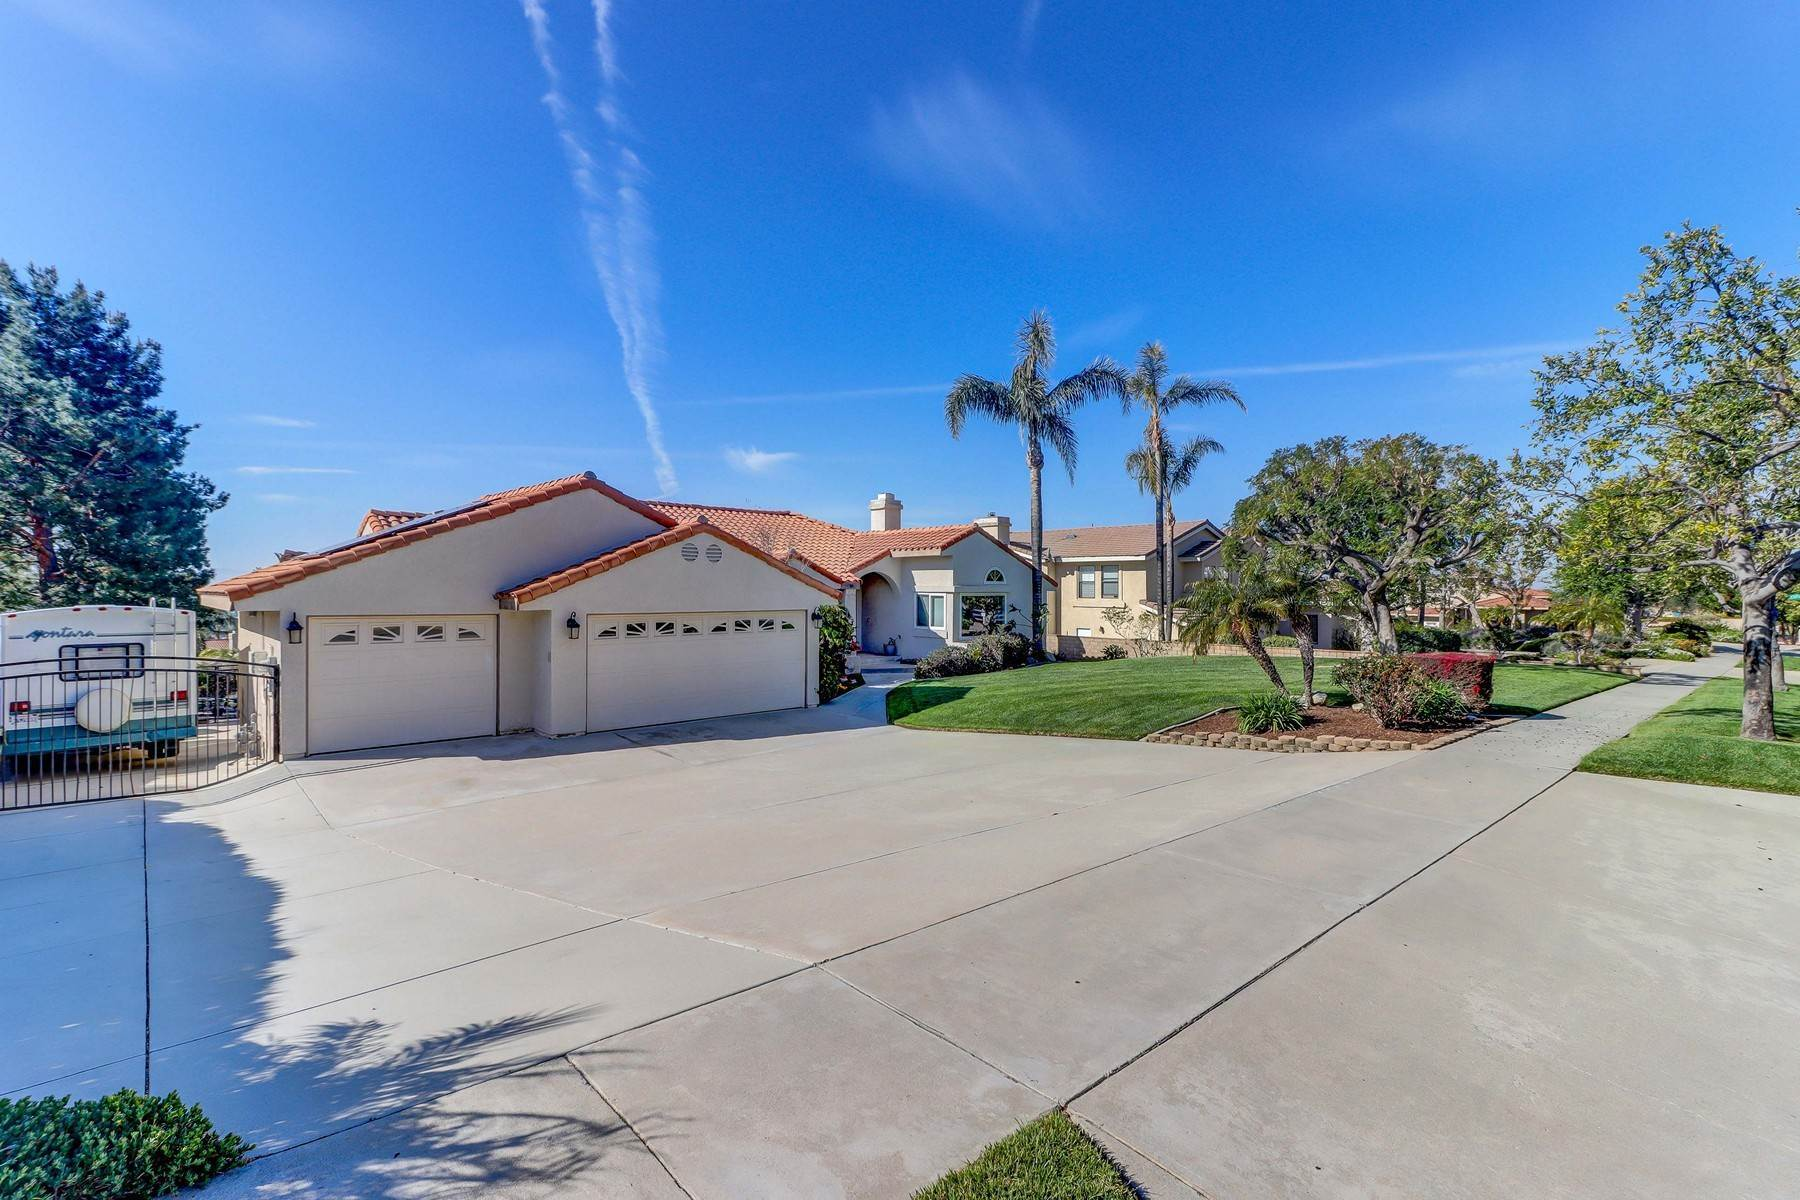 34. Single Family Homes for Sale at 10329 Vista Grove Street, Rancho Cucamonga, CA 91737 10329 Vista Grove Street Rancho Cucamonga, California 91737 United States